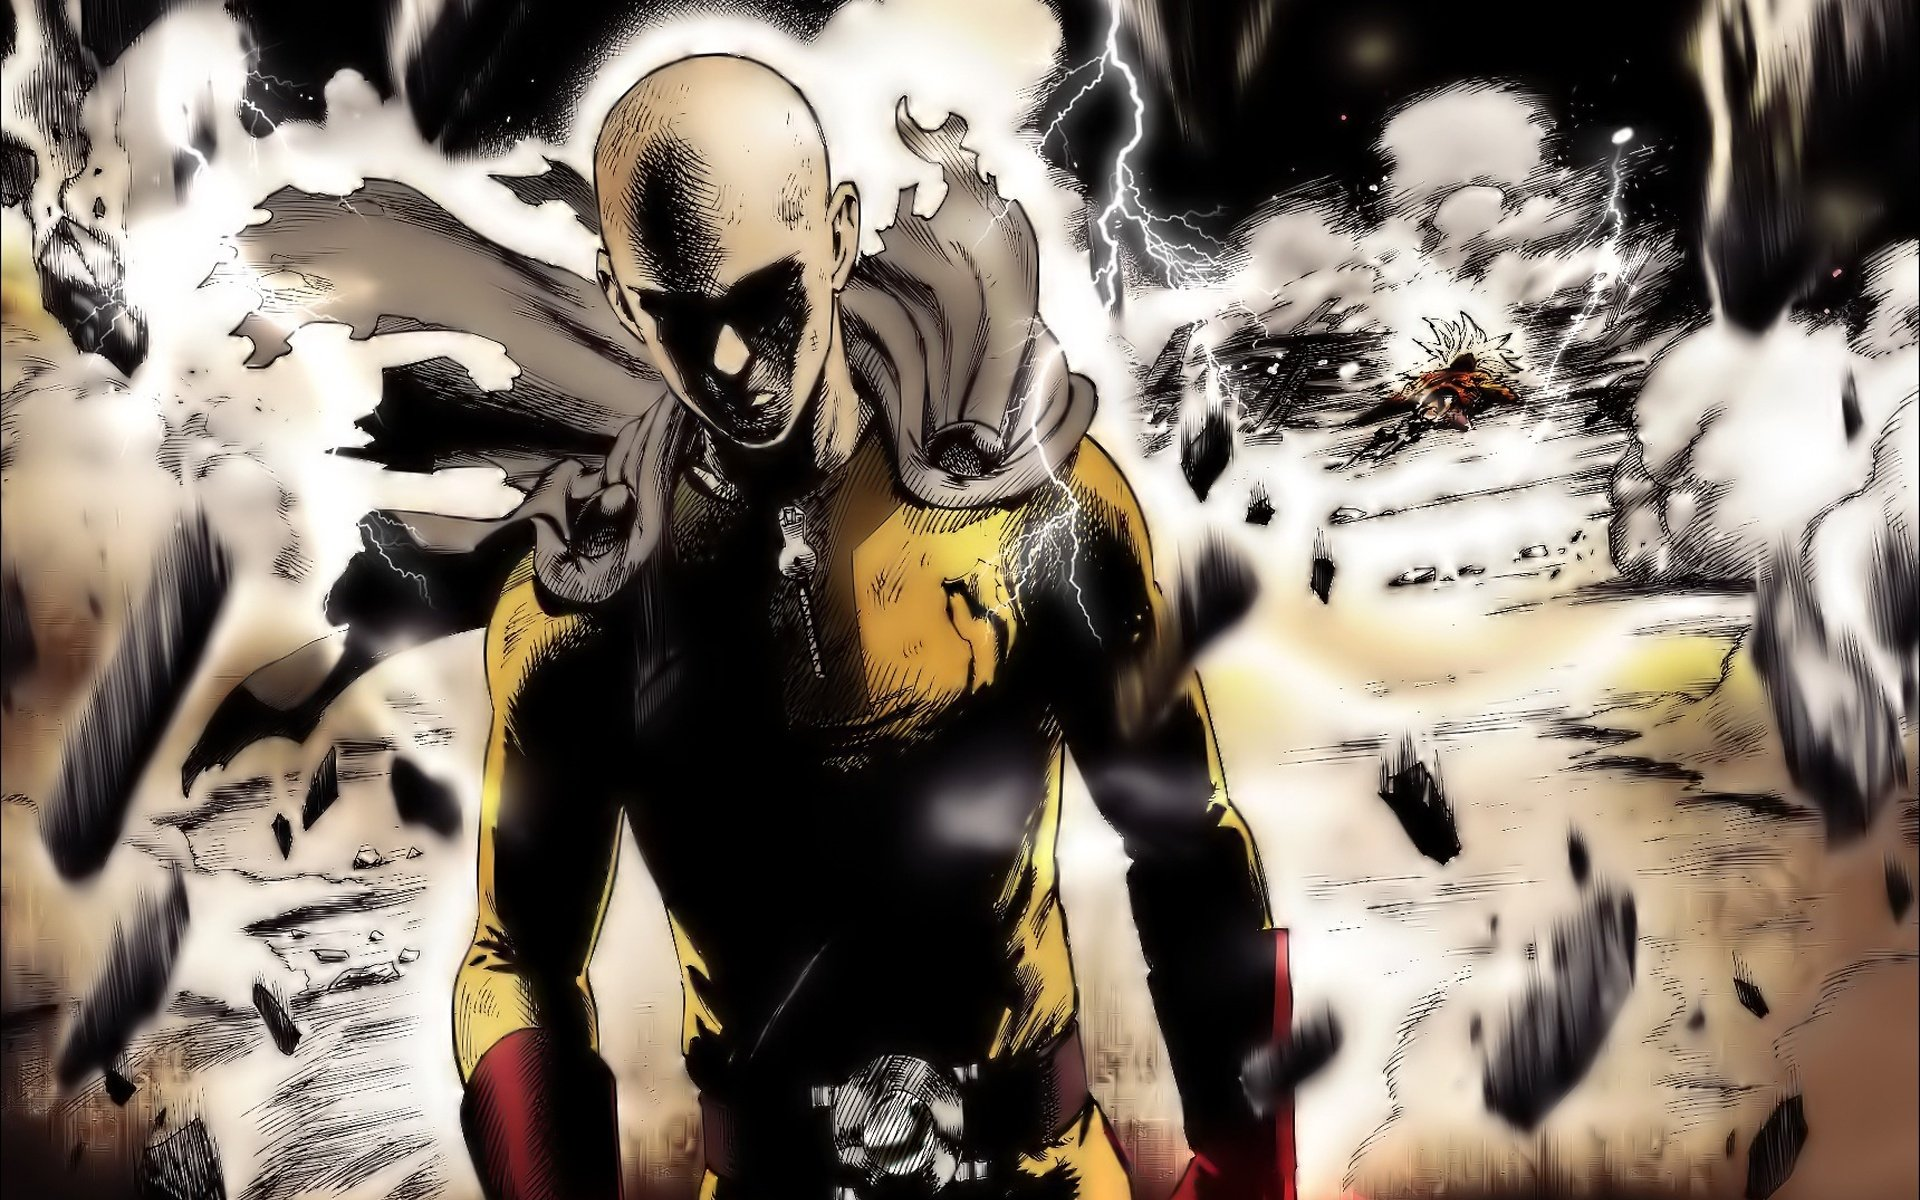 571 One Punch Man Hd Wallpapers Background Images Wallpaper Abyss